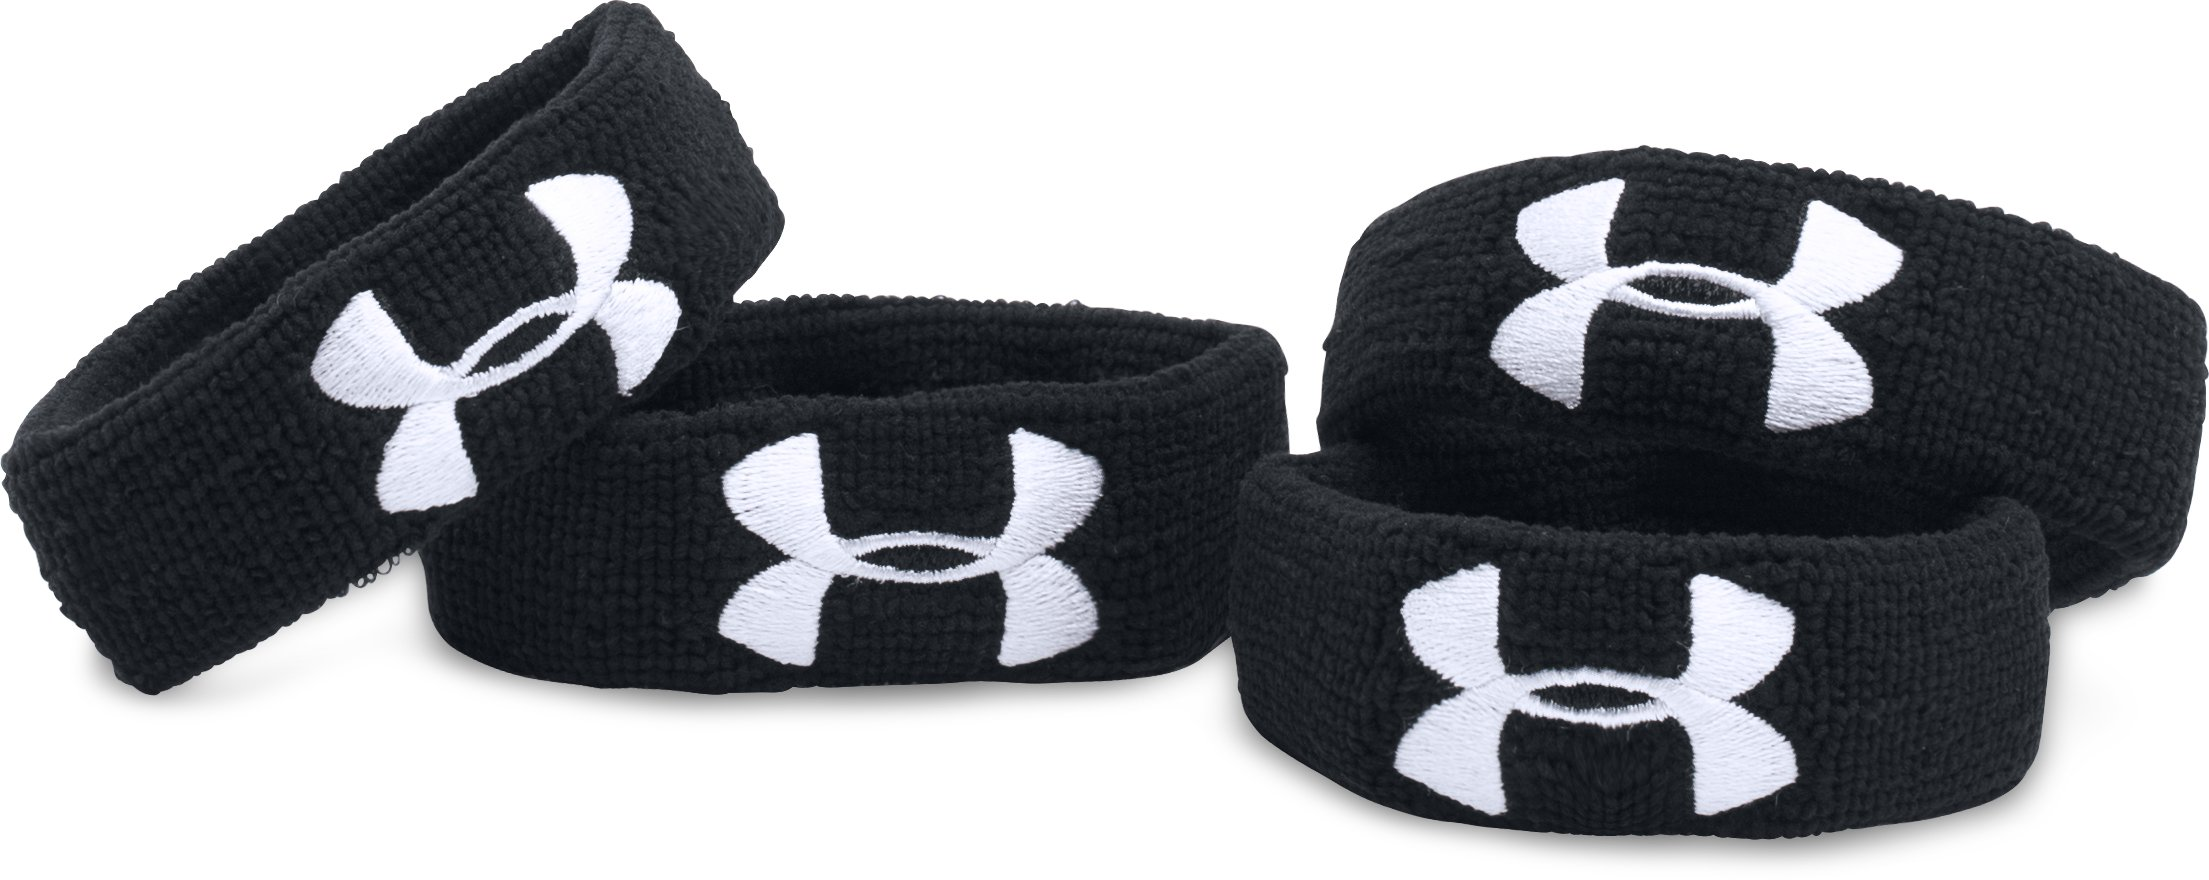 "UA 1"" Performance Wristband 4-Pack 2 Colors $12.99"